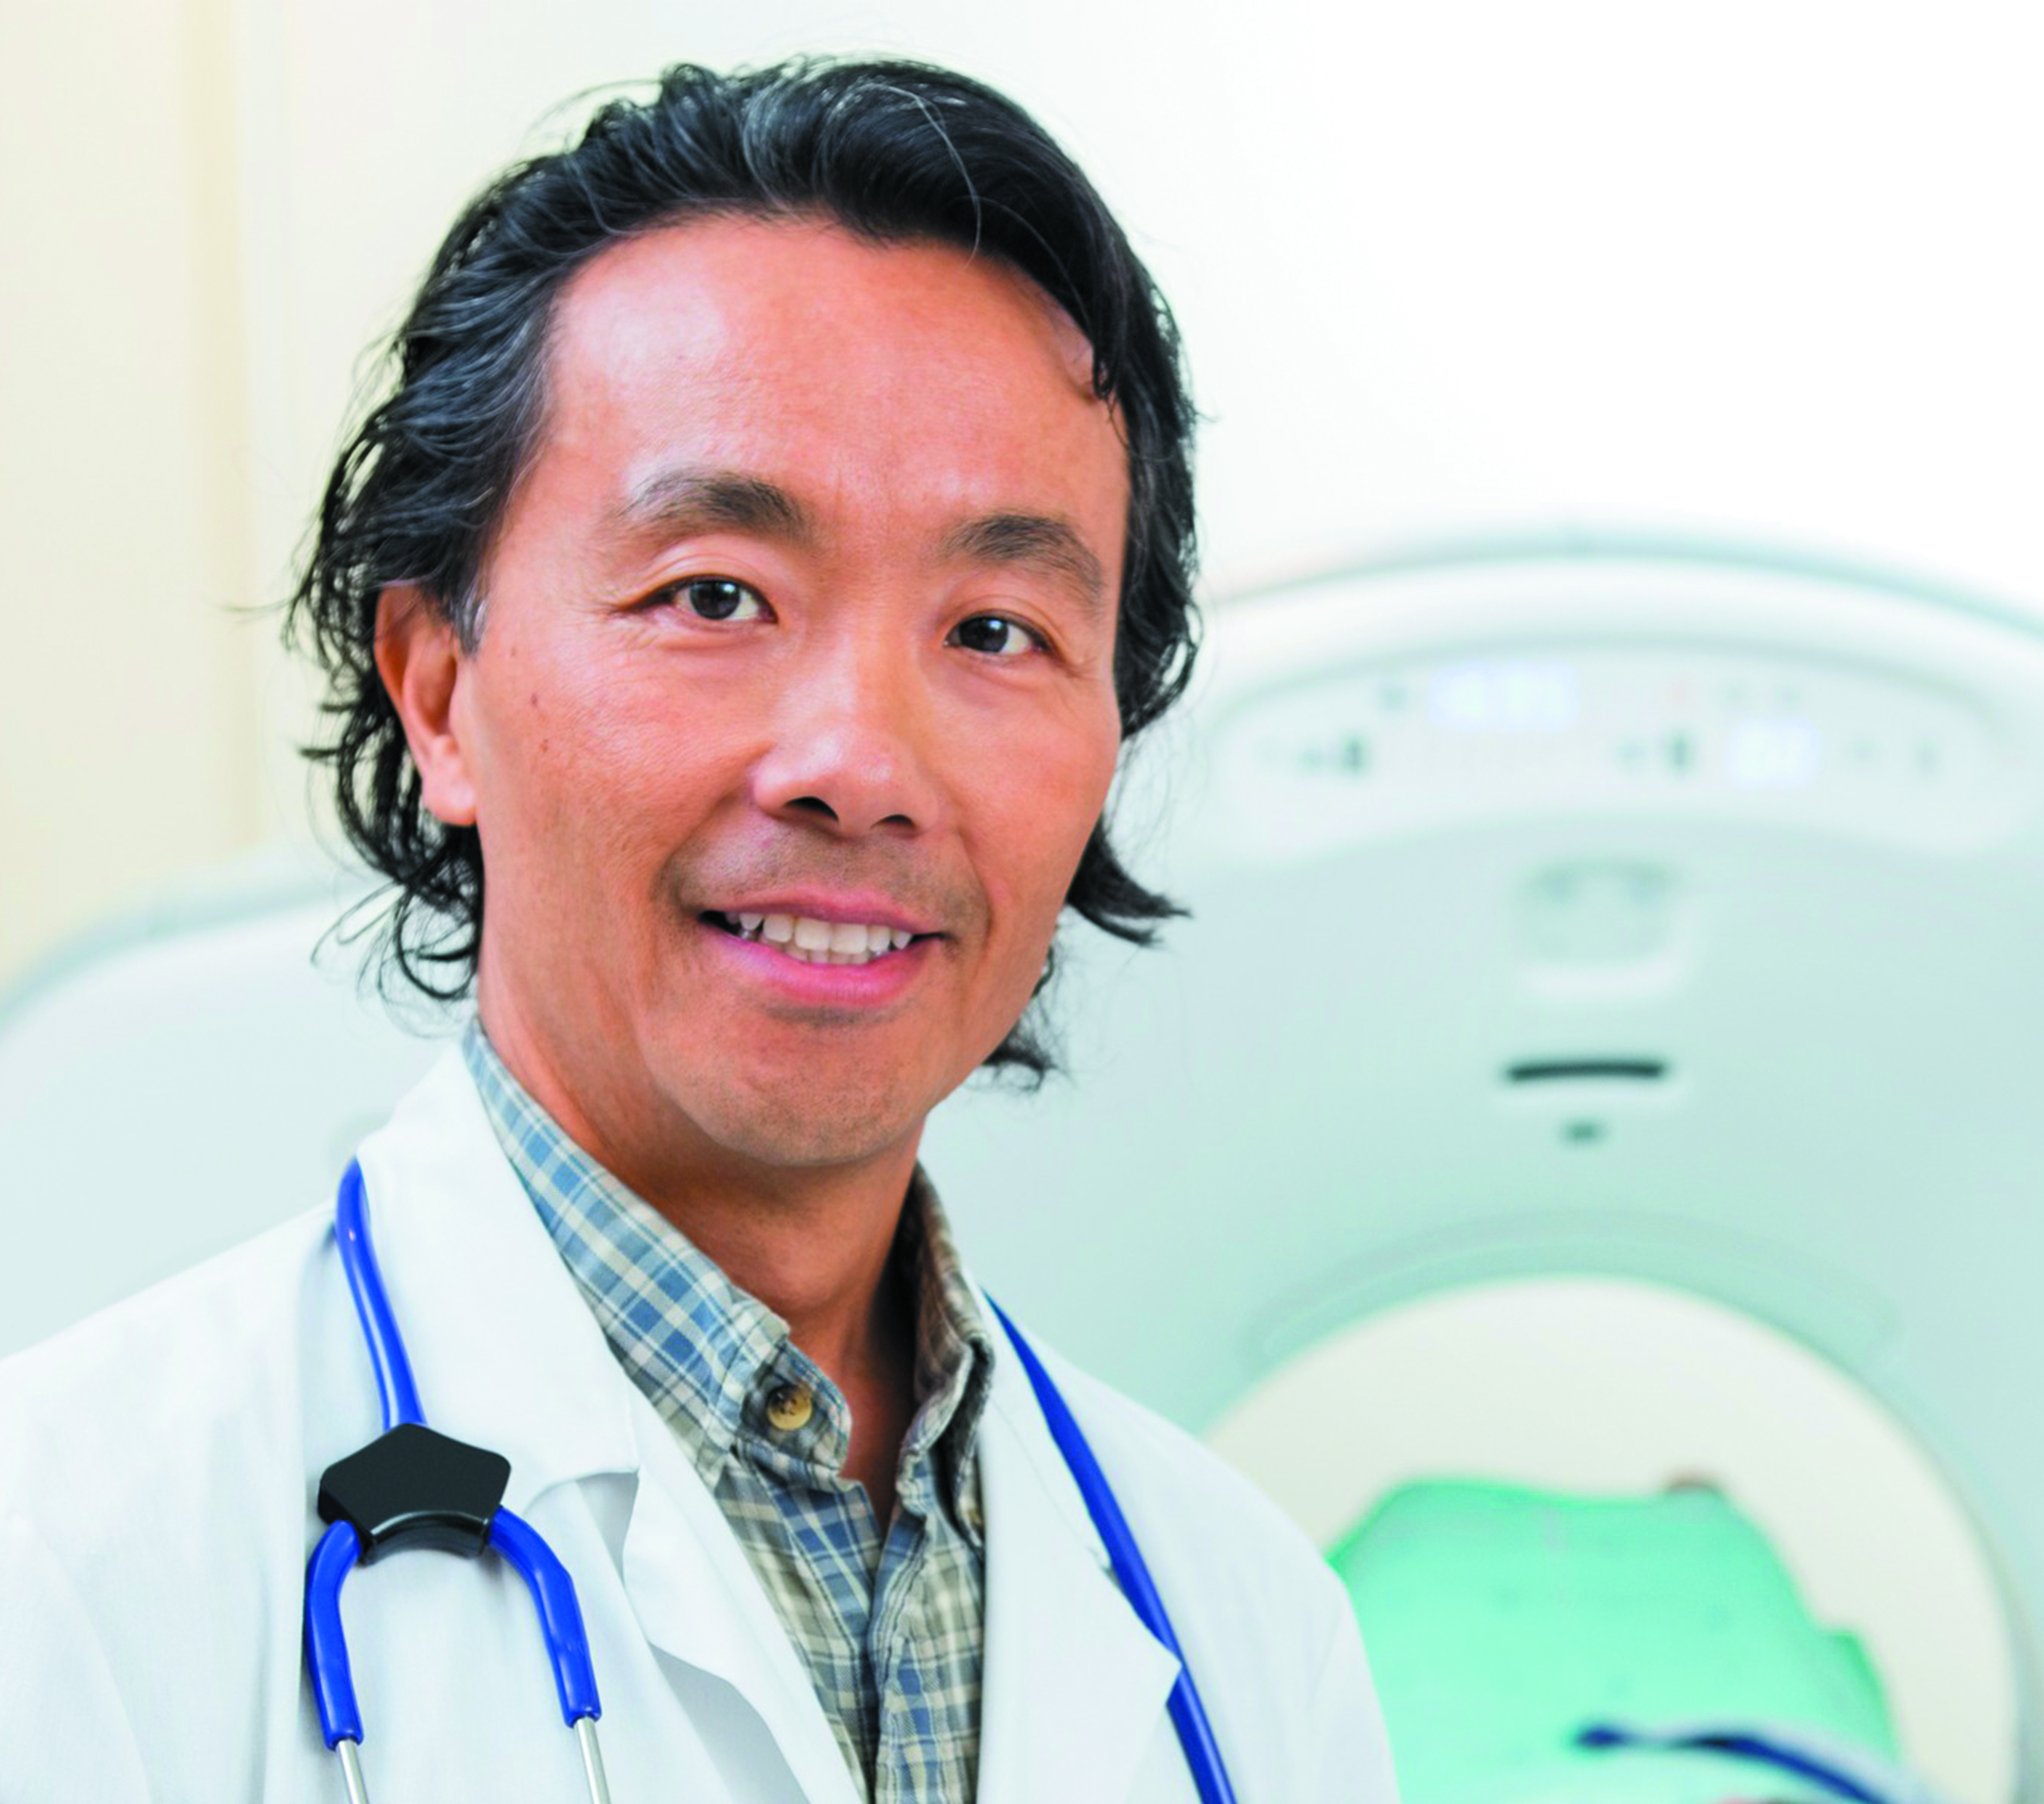 doctor in front of medical imaging equipment